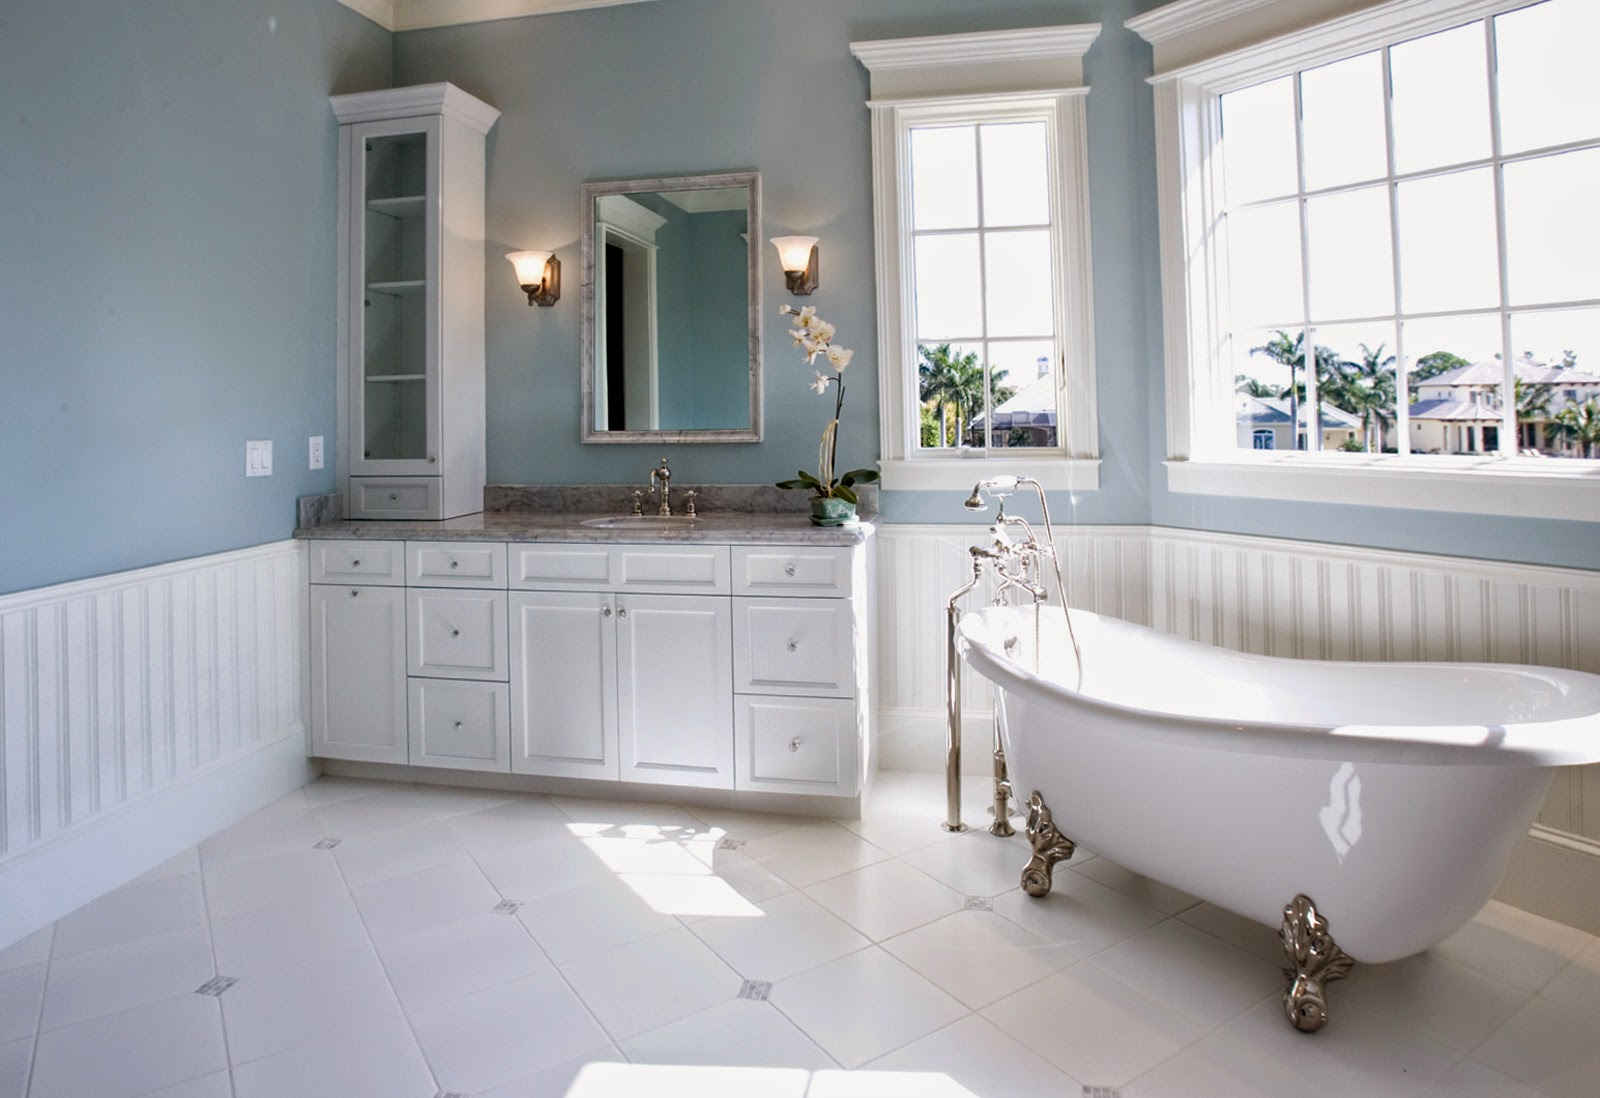 Top 10 beautiful bathroom design 2014 home interior blog for Great bathroom designs